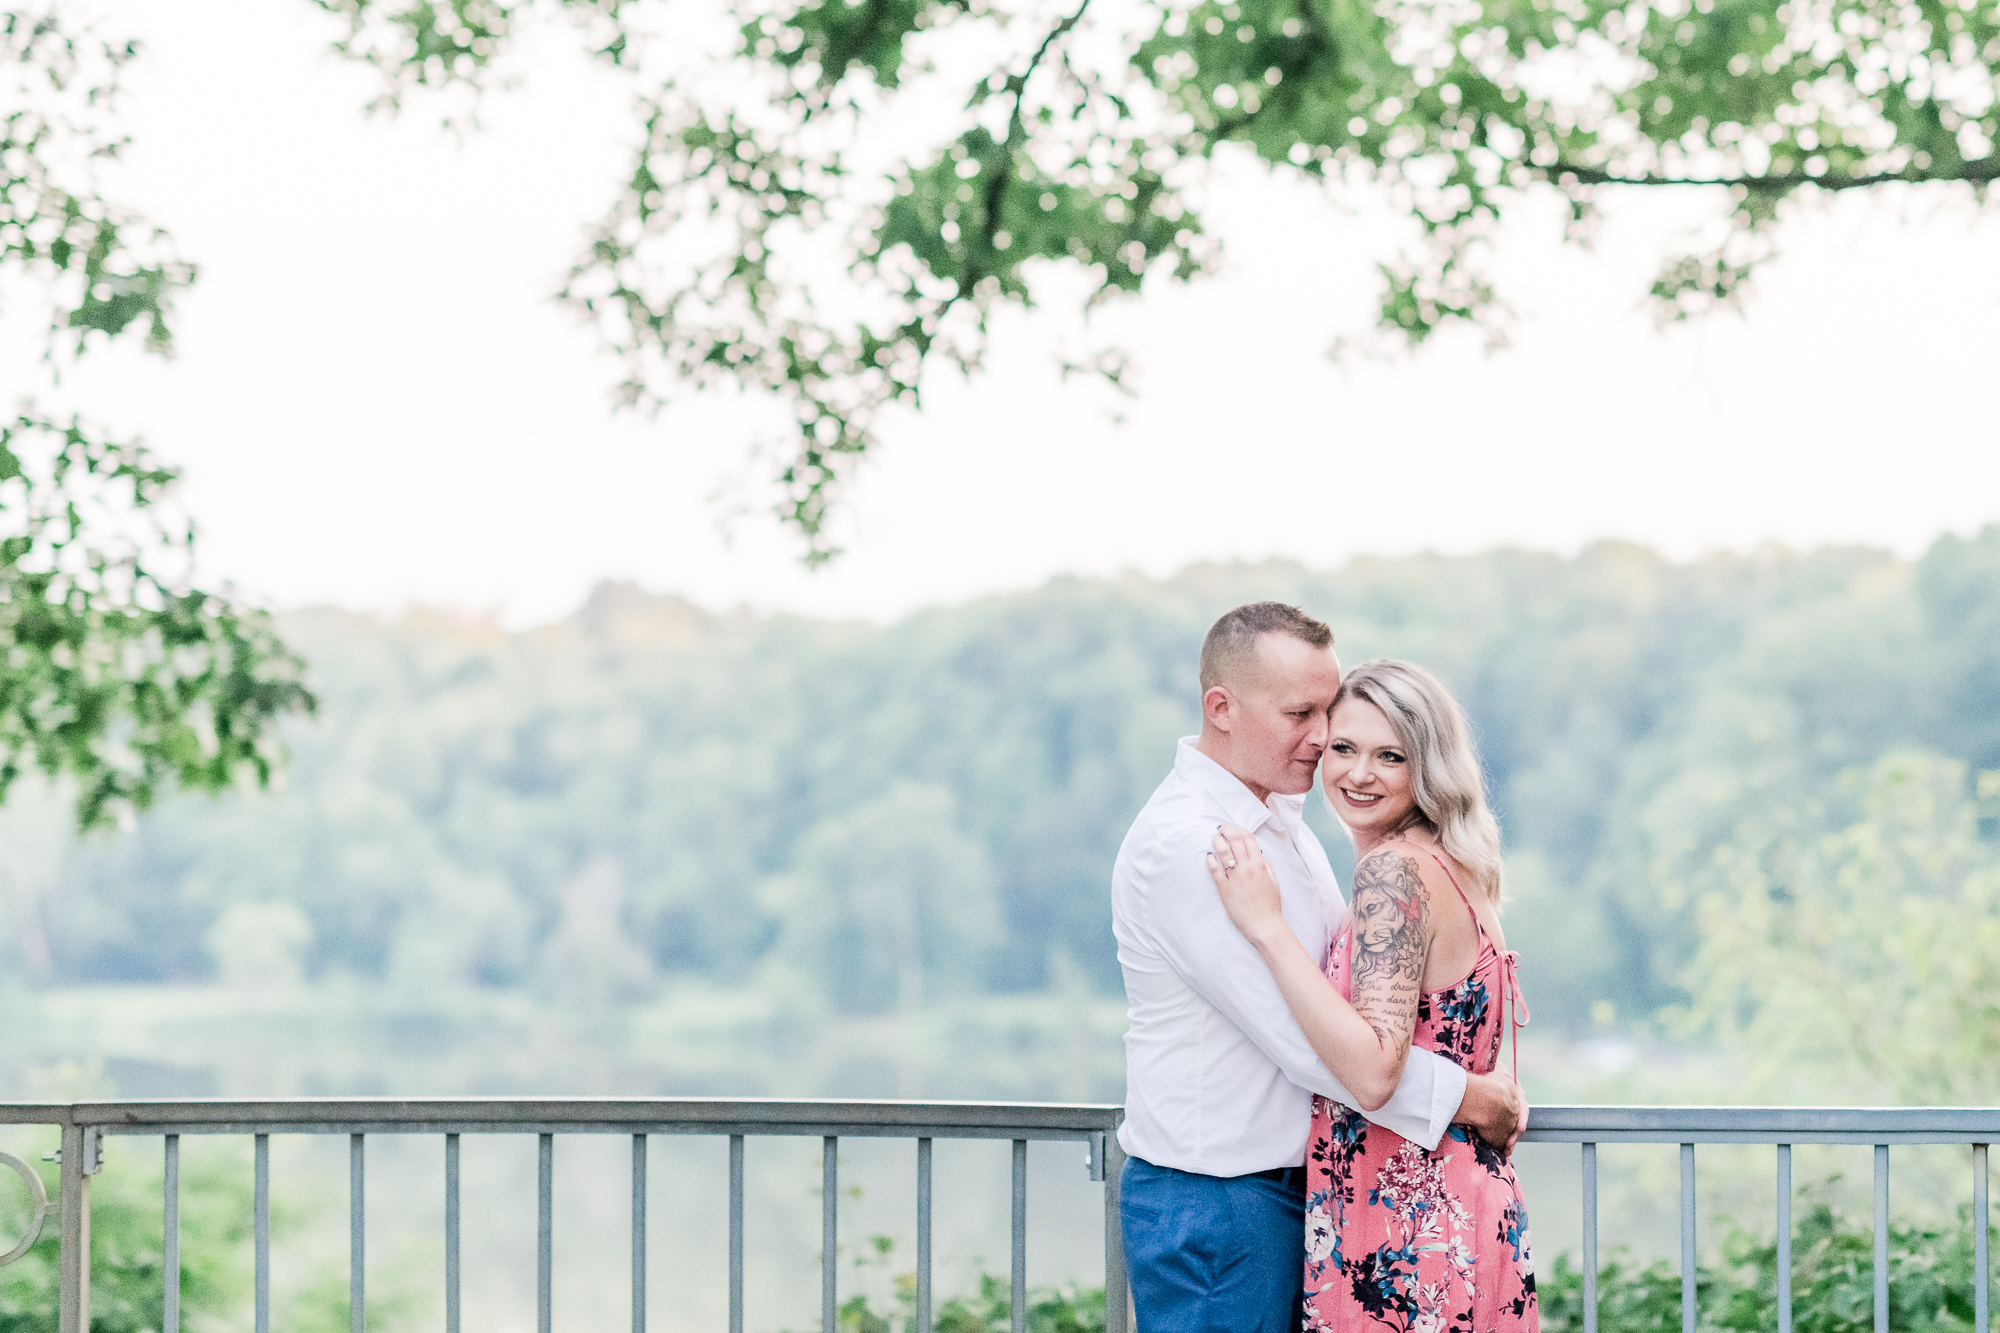 Kristina+Matt_Engagement Session_Mill Creek Park_Youngstown_Ohio-27.jpg